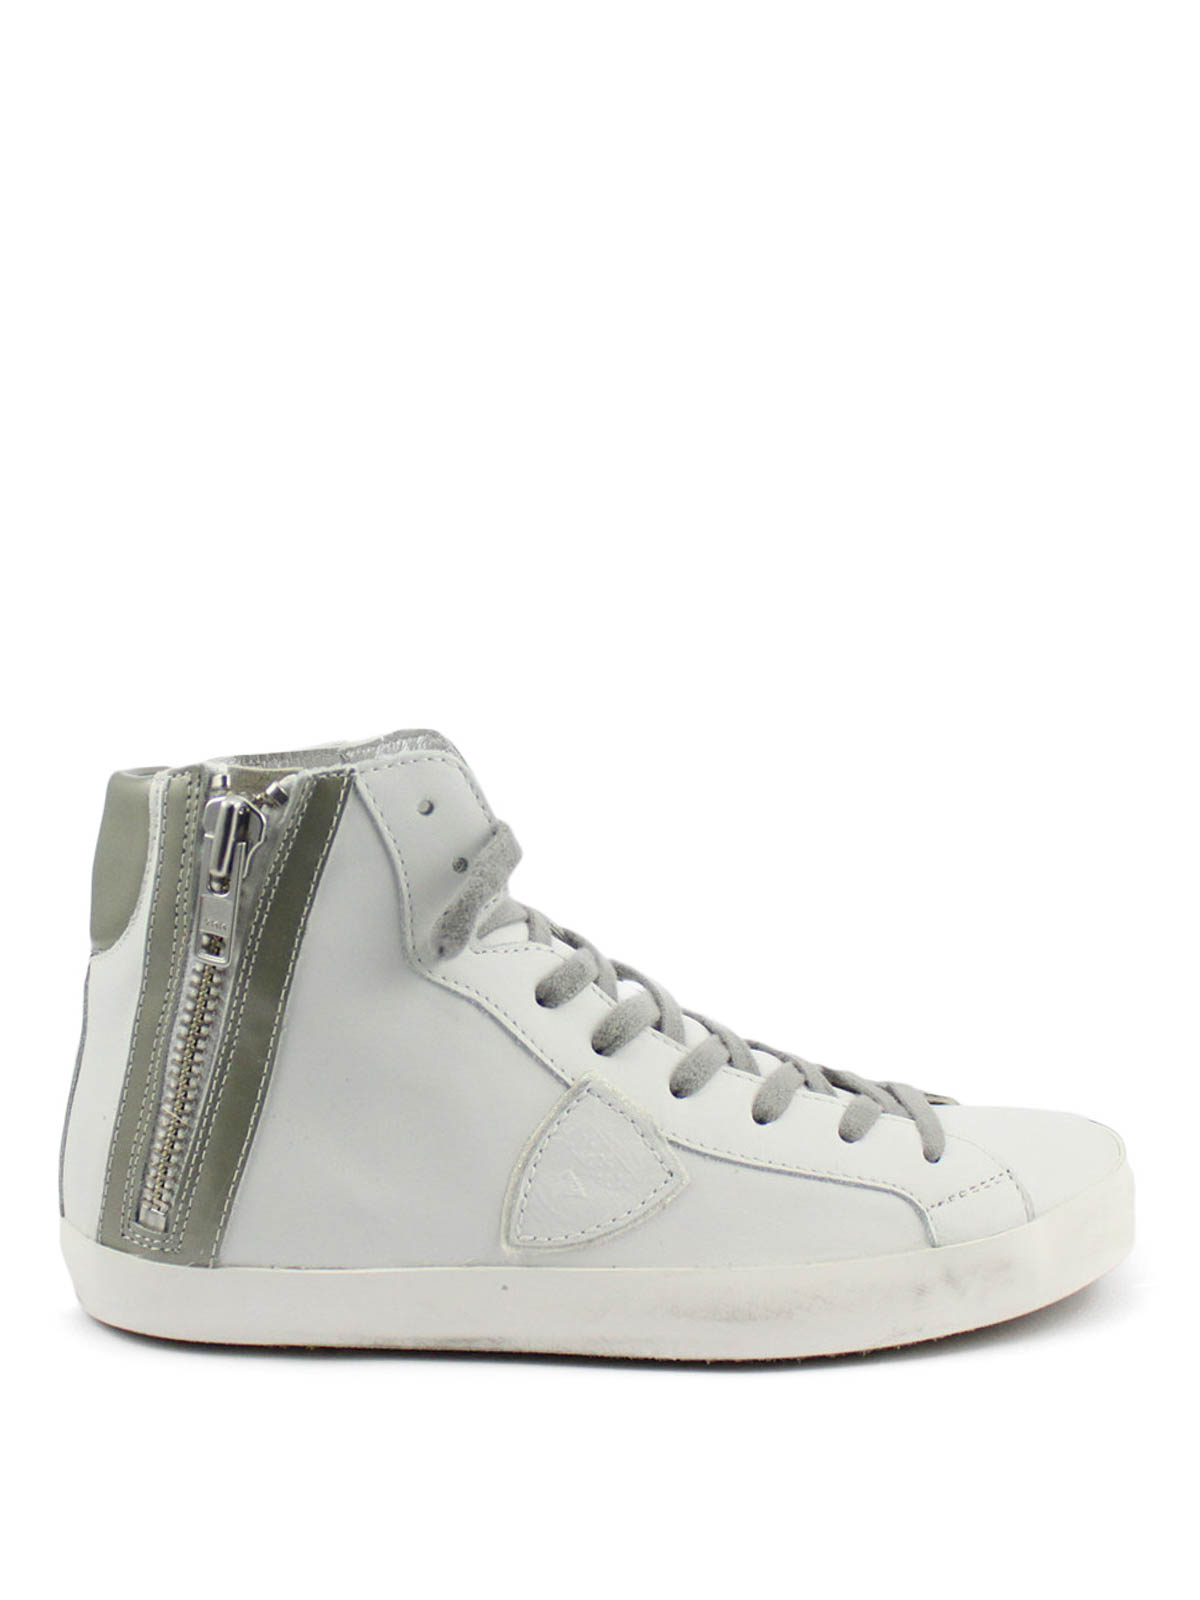 high top calf leather sneakers by philippe model trainers ikrix. Black Bedroom Furniture Sets. Home Design Ideas